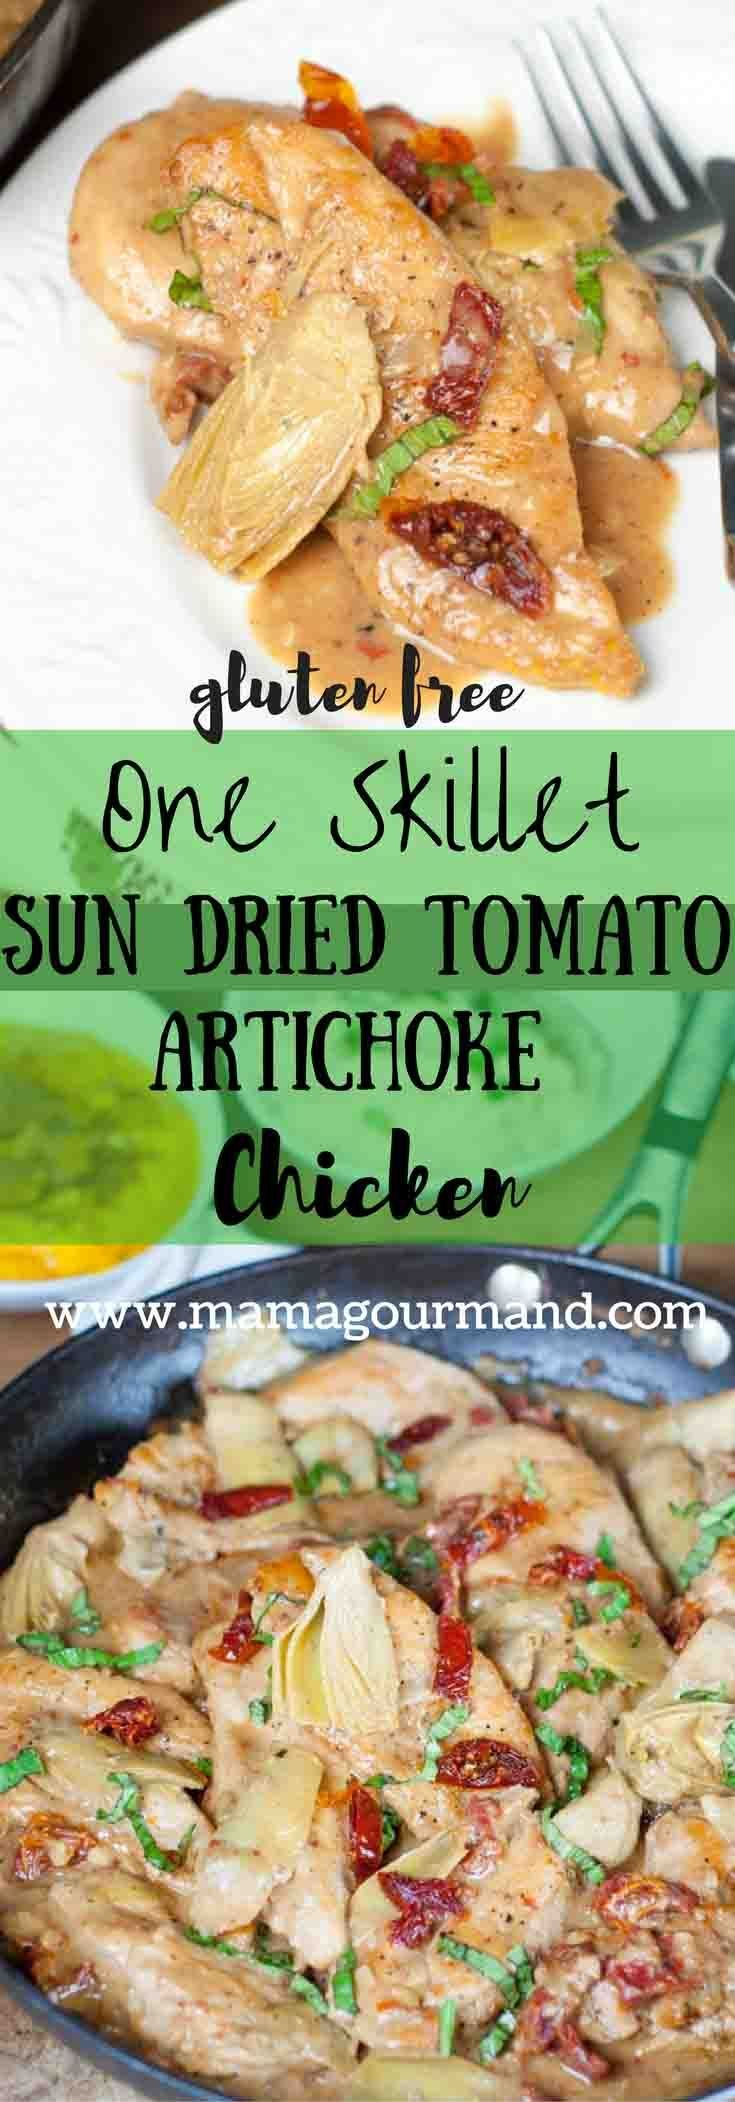 Sun Dried Tomato Artichoke Skillet Chicken with Alexia sides is an easy, one pot weeknight meal on your table in 30 minutes, but tastes anything but simple!